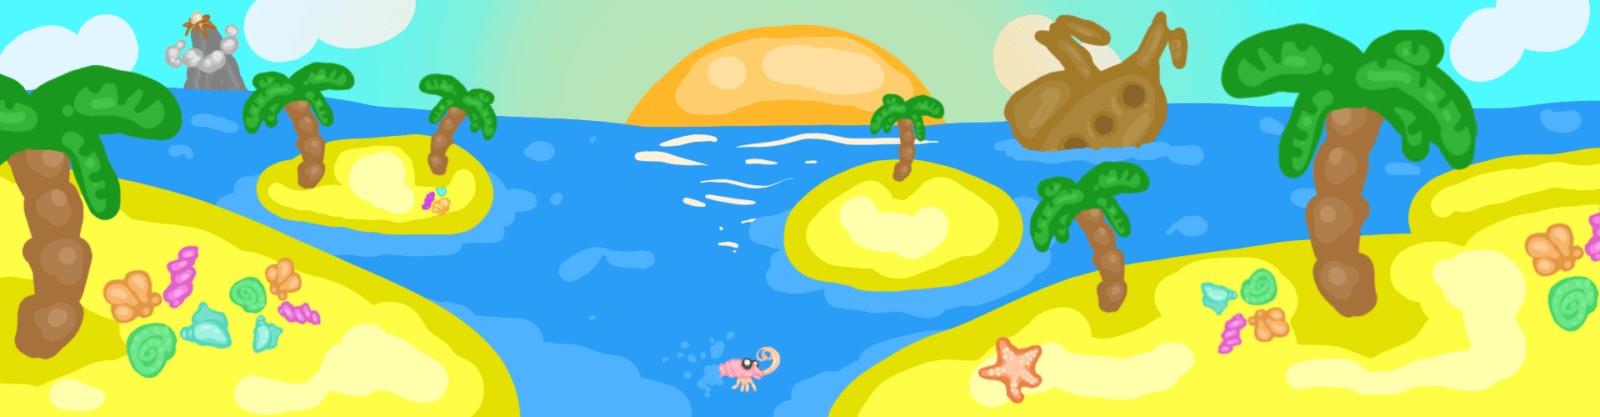 NEW CONTEST THEME: BEACH